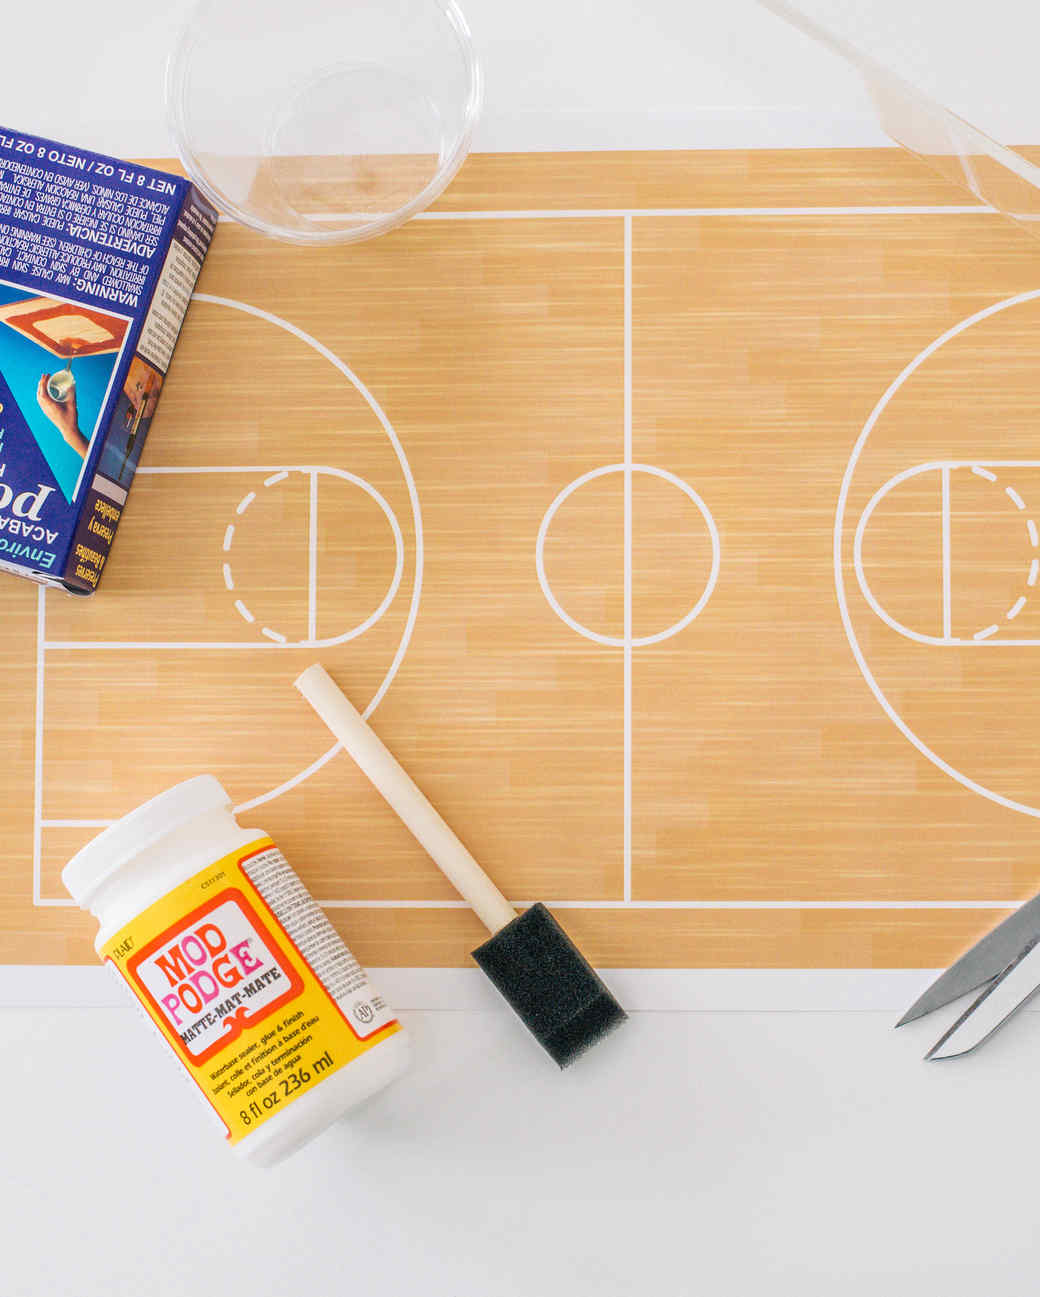 March madness basketball party tray martha stewart for Average basketball court size